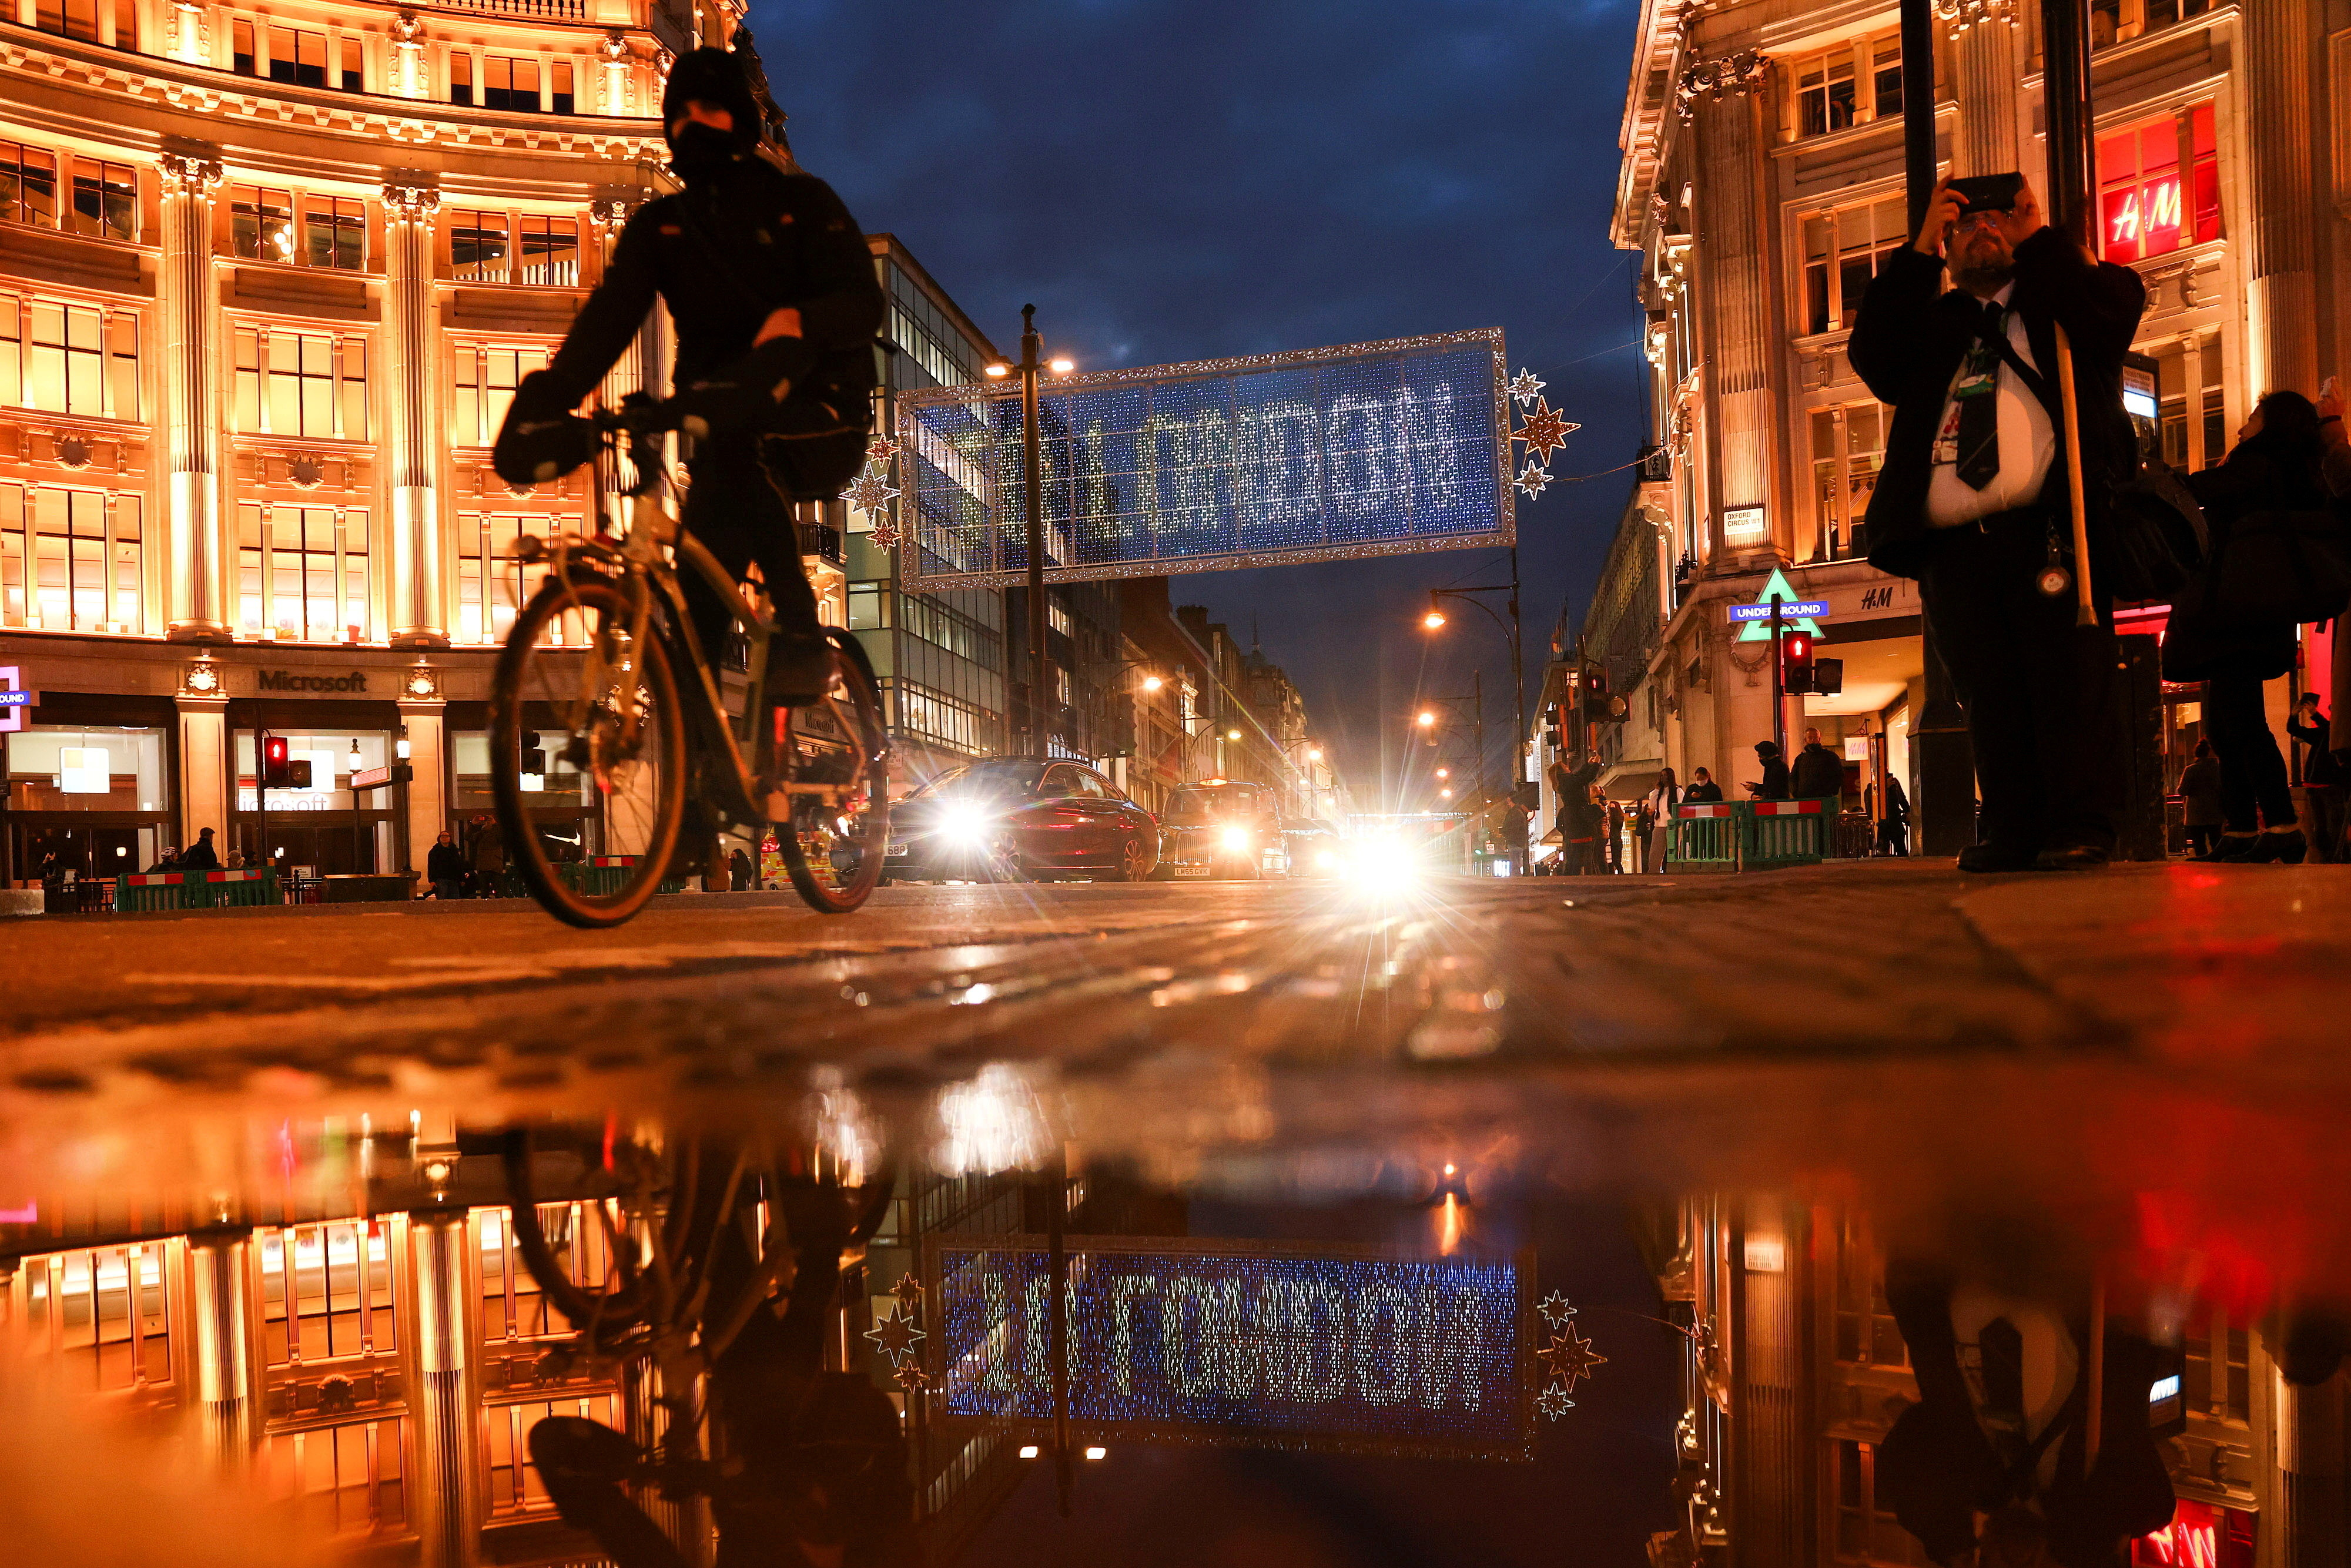 A cyclist moves cycles past the Christmas lights on Oxford Street amid the coronavirus disease (COVID-19) outbreak in London, Britain, November 19, 2020. REUTERS/Simon Dawson     TPX IMAGES OF THE DAY - RC2H6K9IRZS7